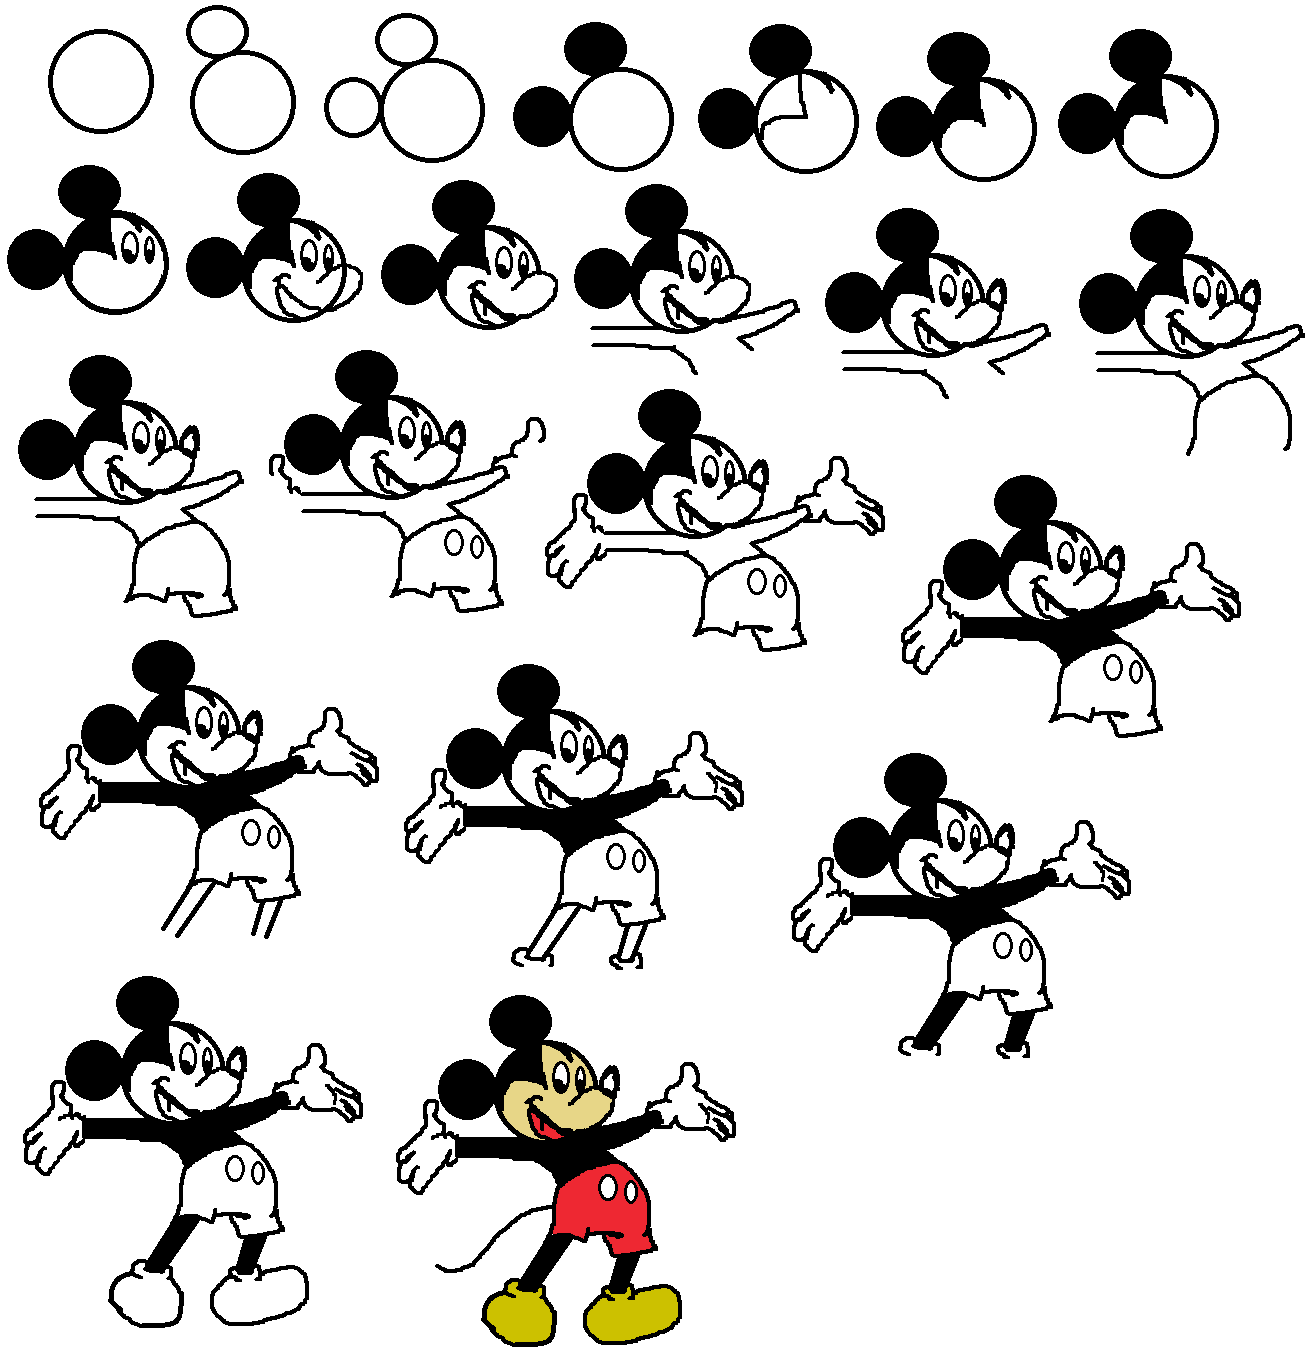 how to draw micky how to draw mickey mouse in 2020p hd youtube micky draw how to